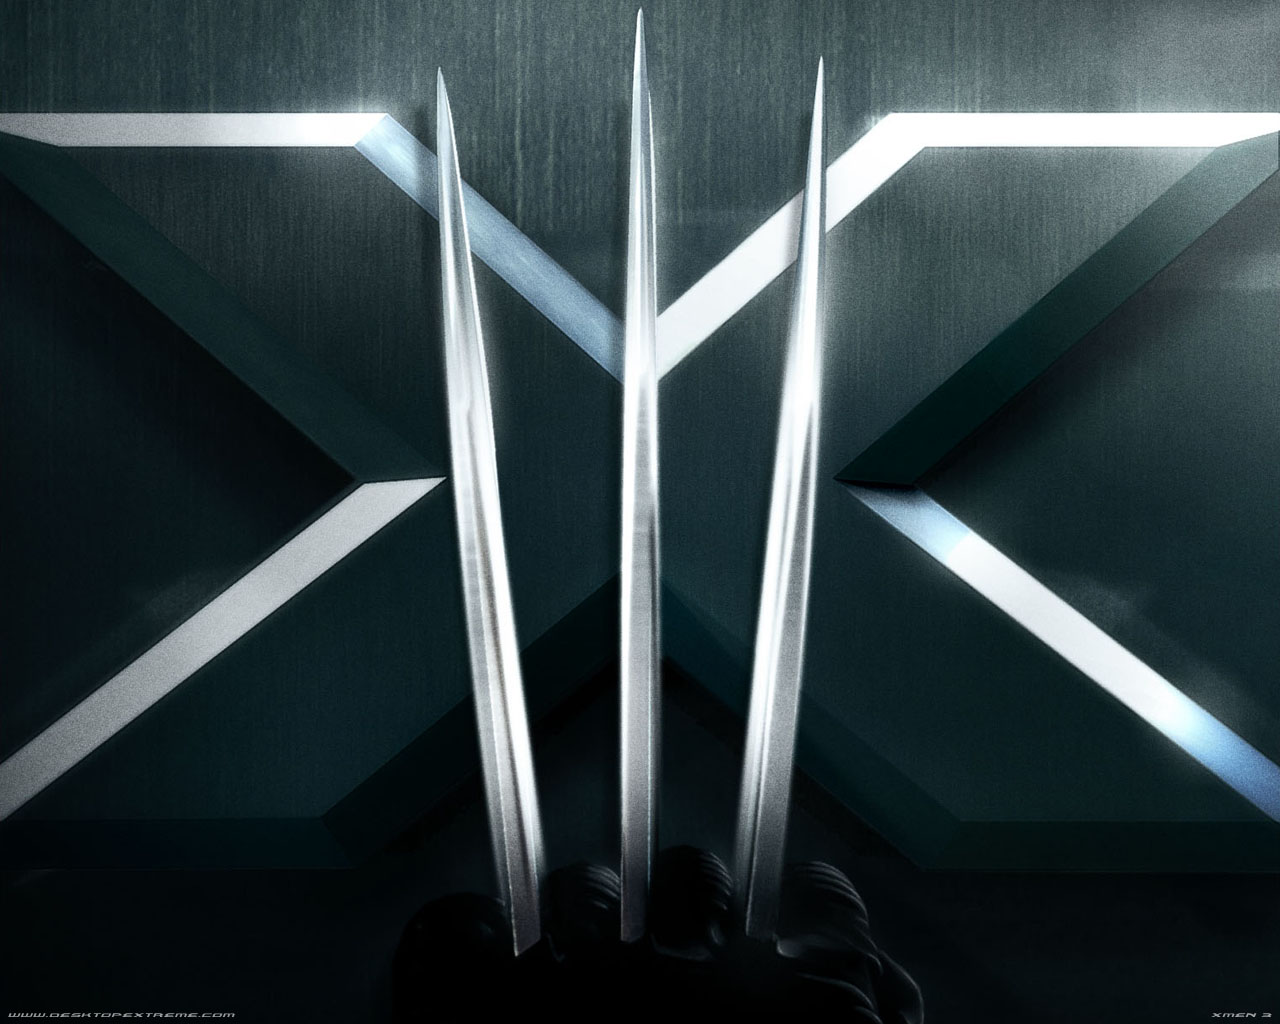 Men 3 X3 Wallpaper by DesktopExtremecom   Wallpaper For Your 1280x1024